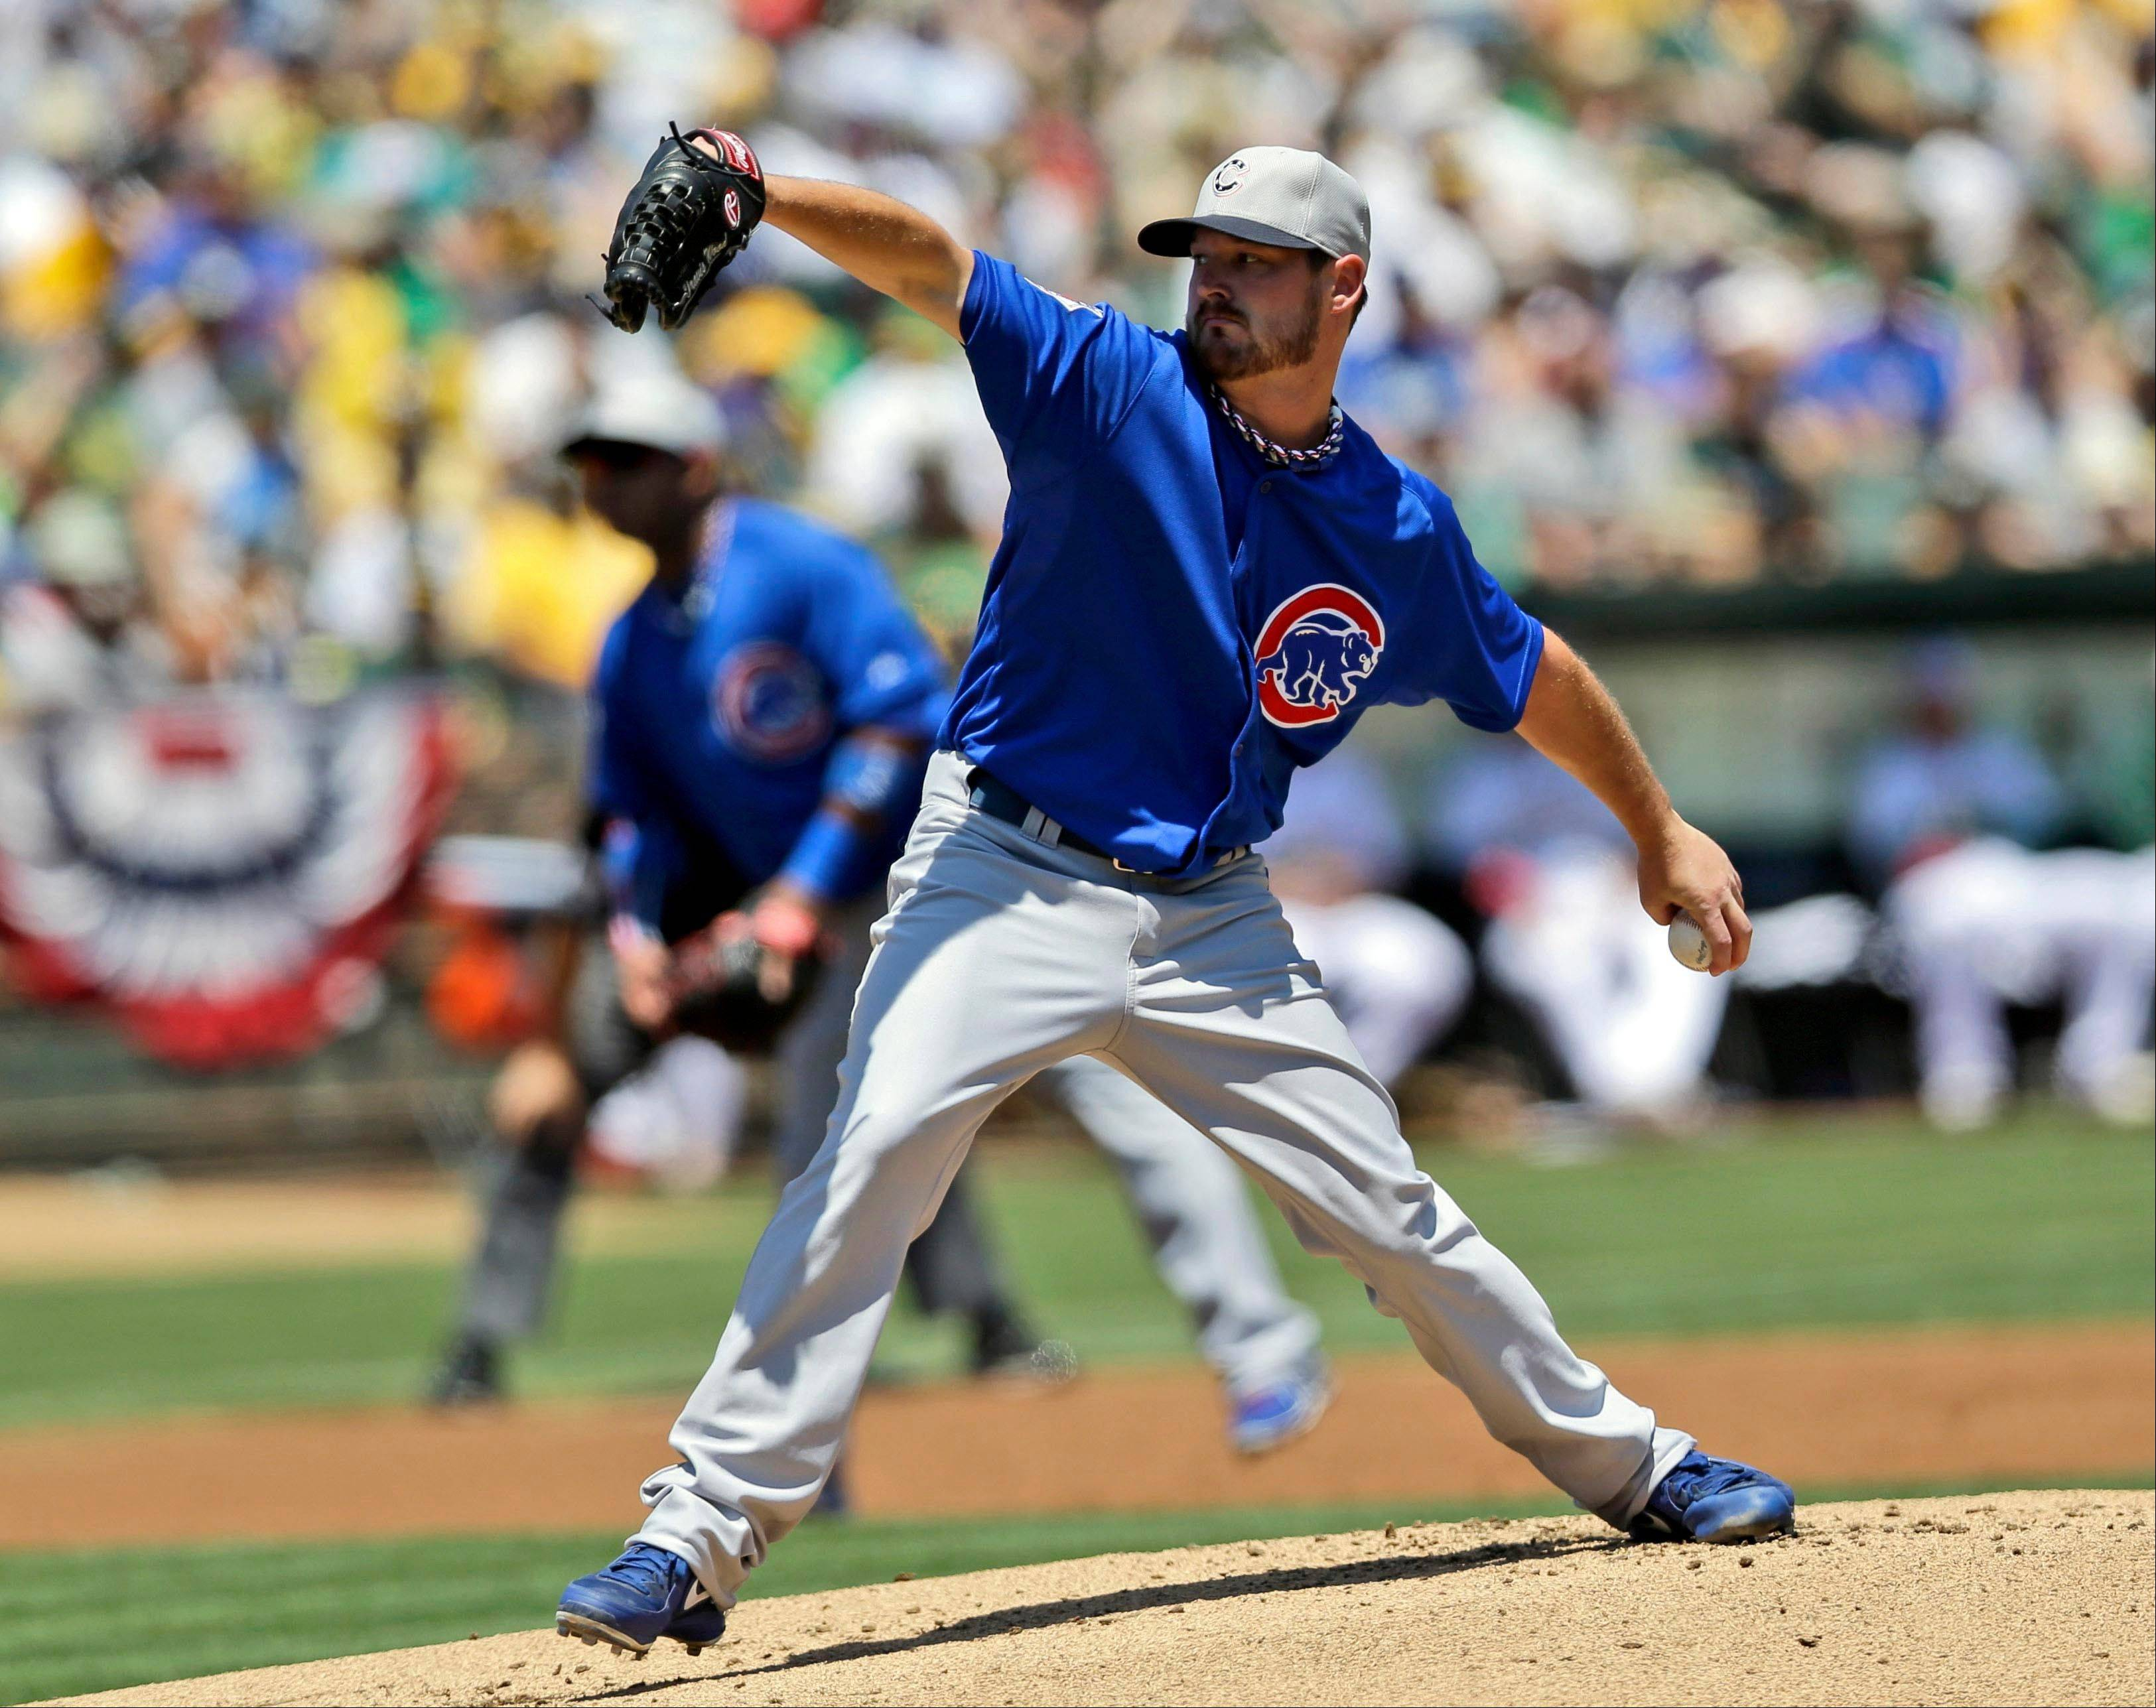 Cubs starting pitcher Travis Wood has proved this year that being an all-star pitcher isn�t just about wins and losses.